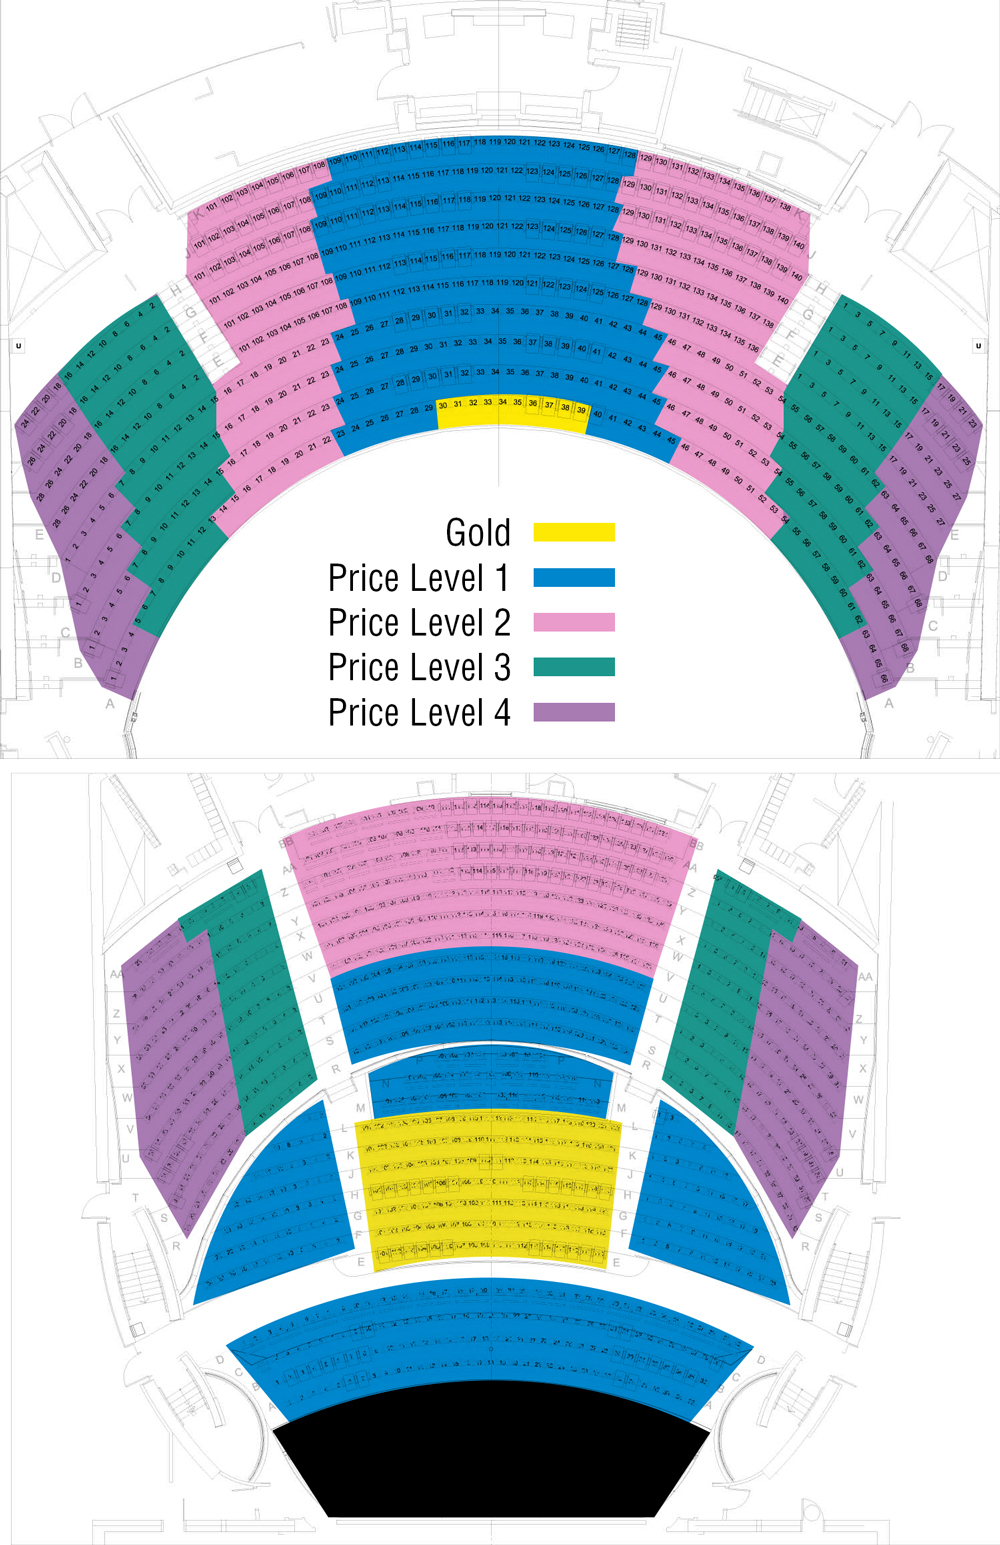 cobb energy performing arts centre, atlanta, ga: tickets, schedule